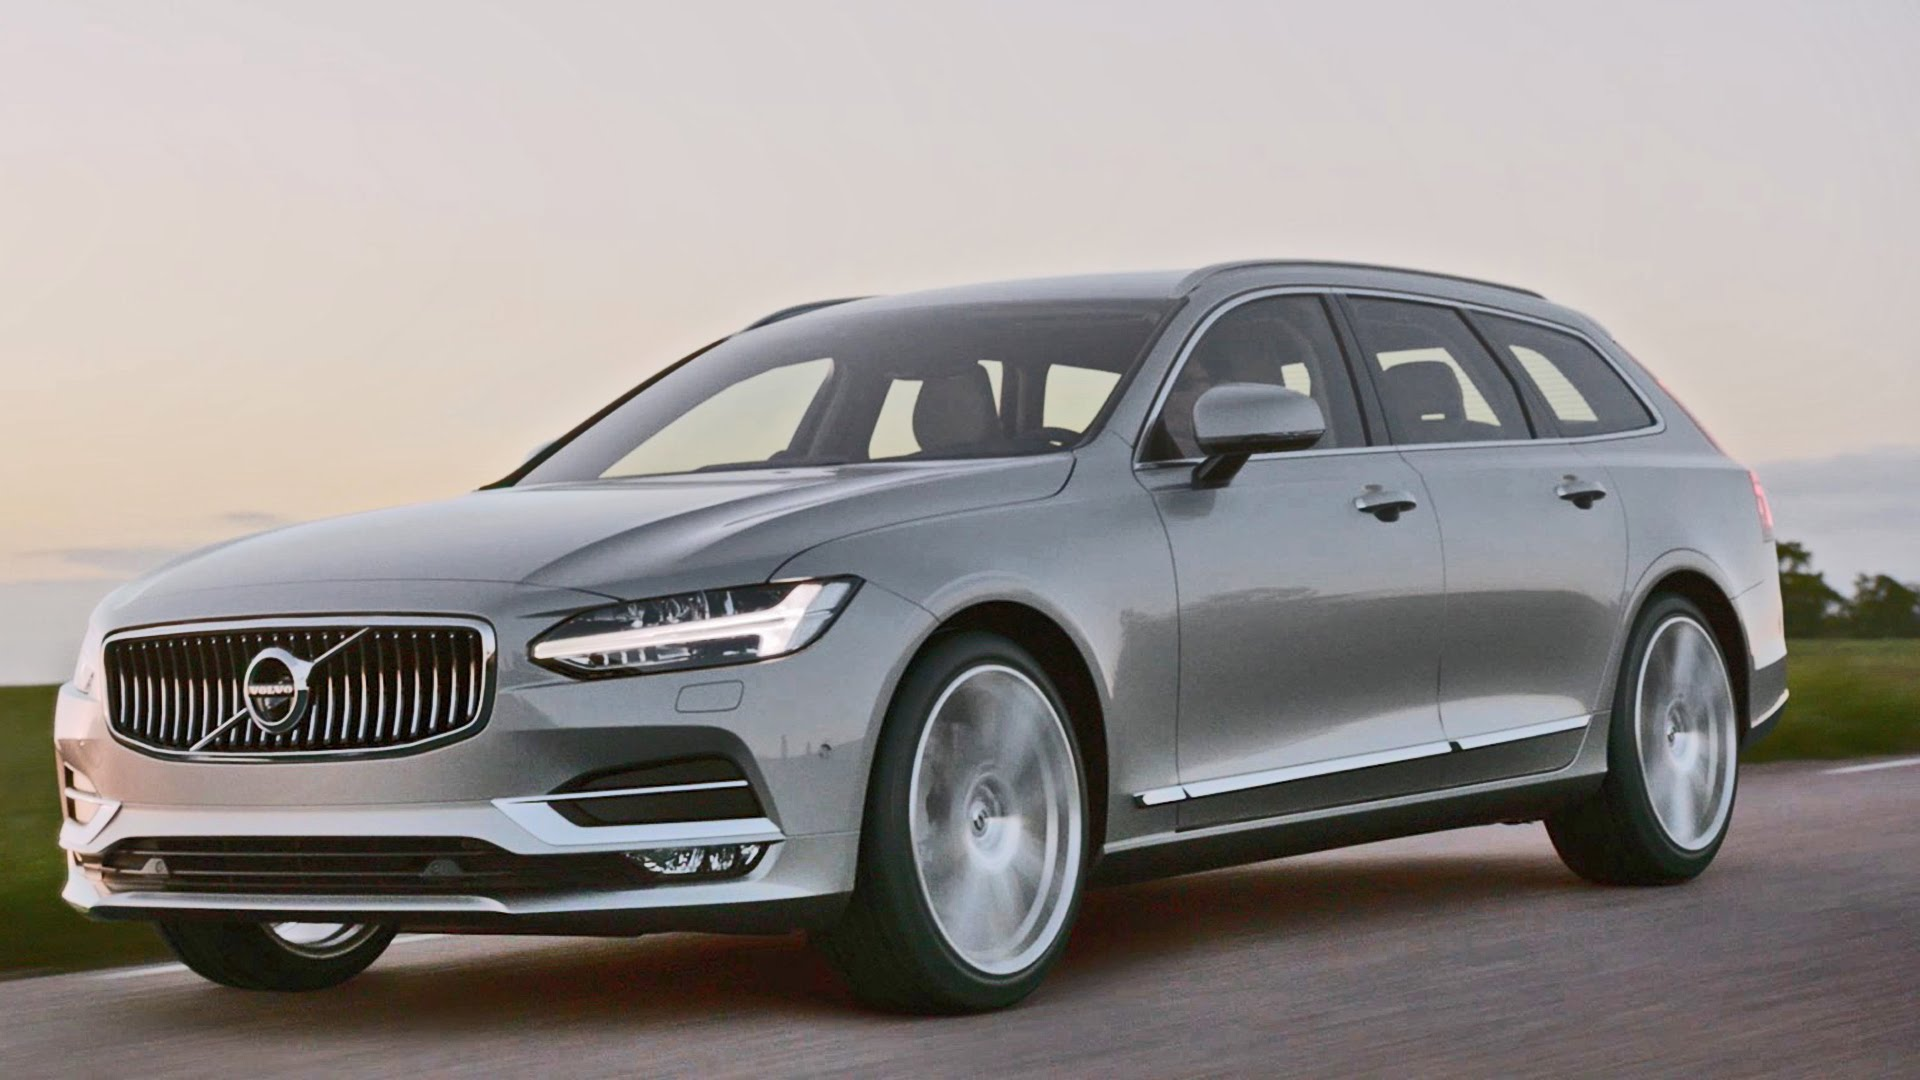 Volvo V90 Crowned Best Estate In UK Car Of The Year Awards